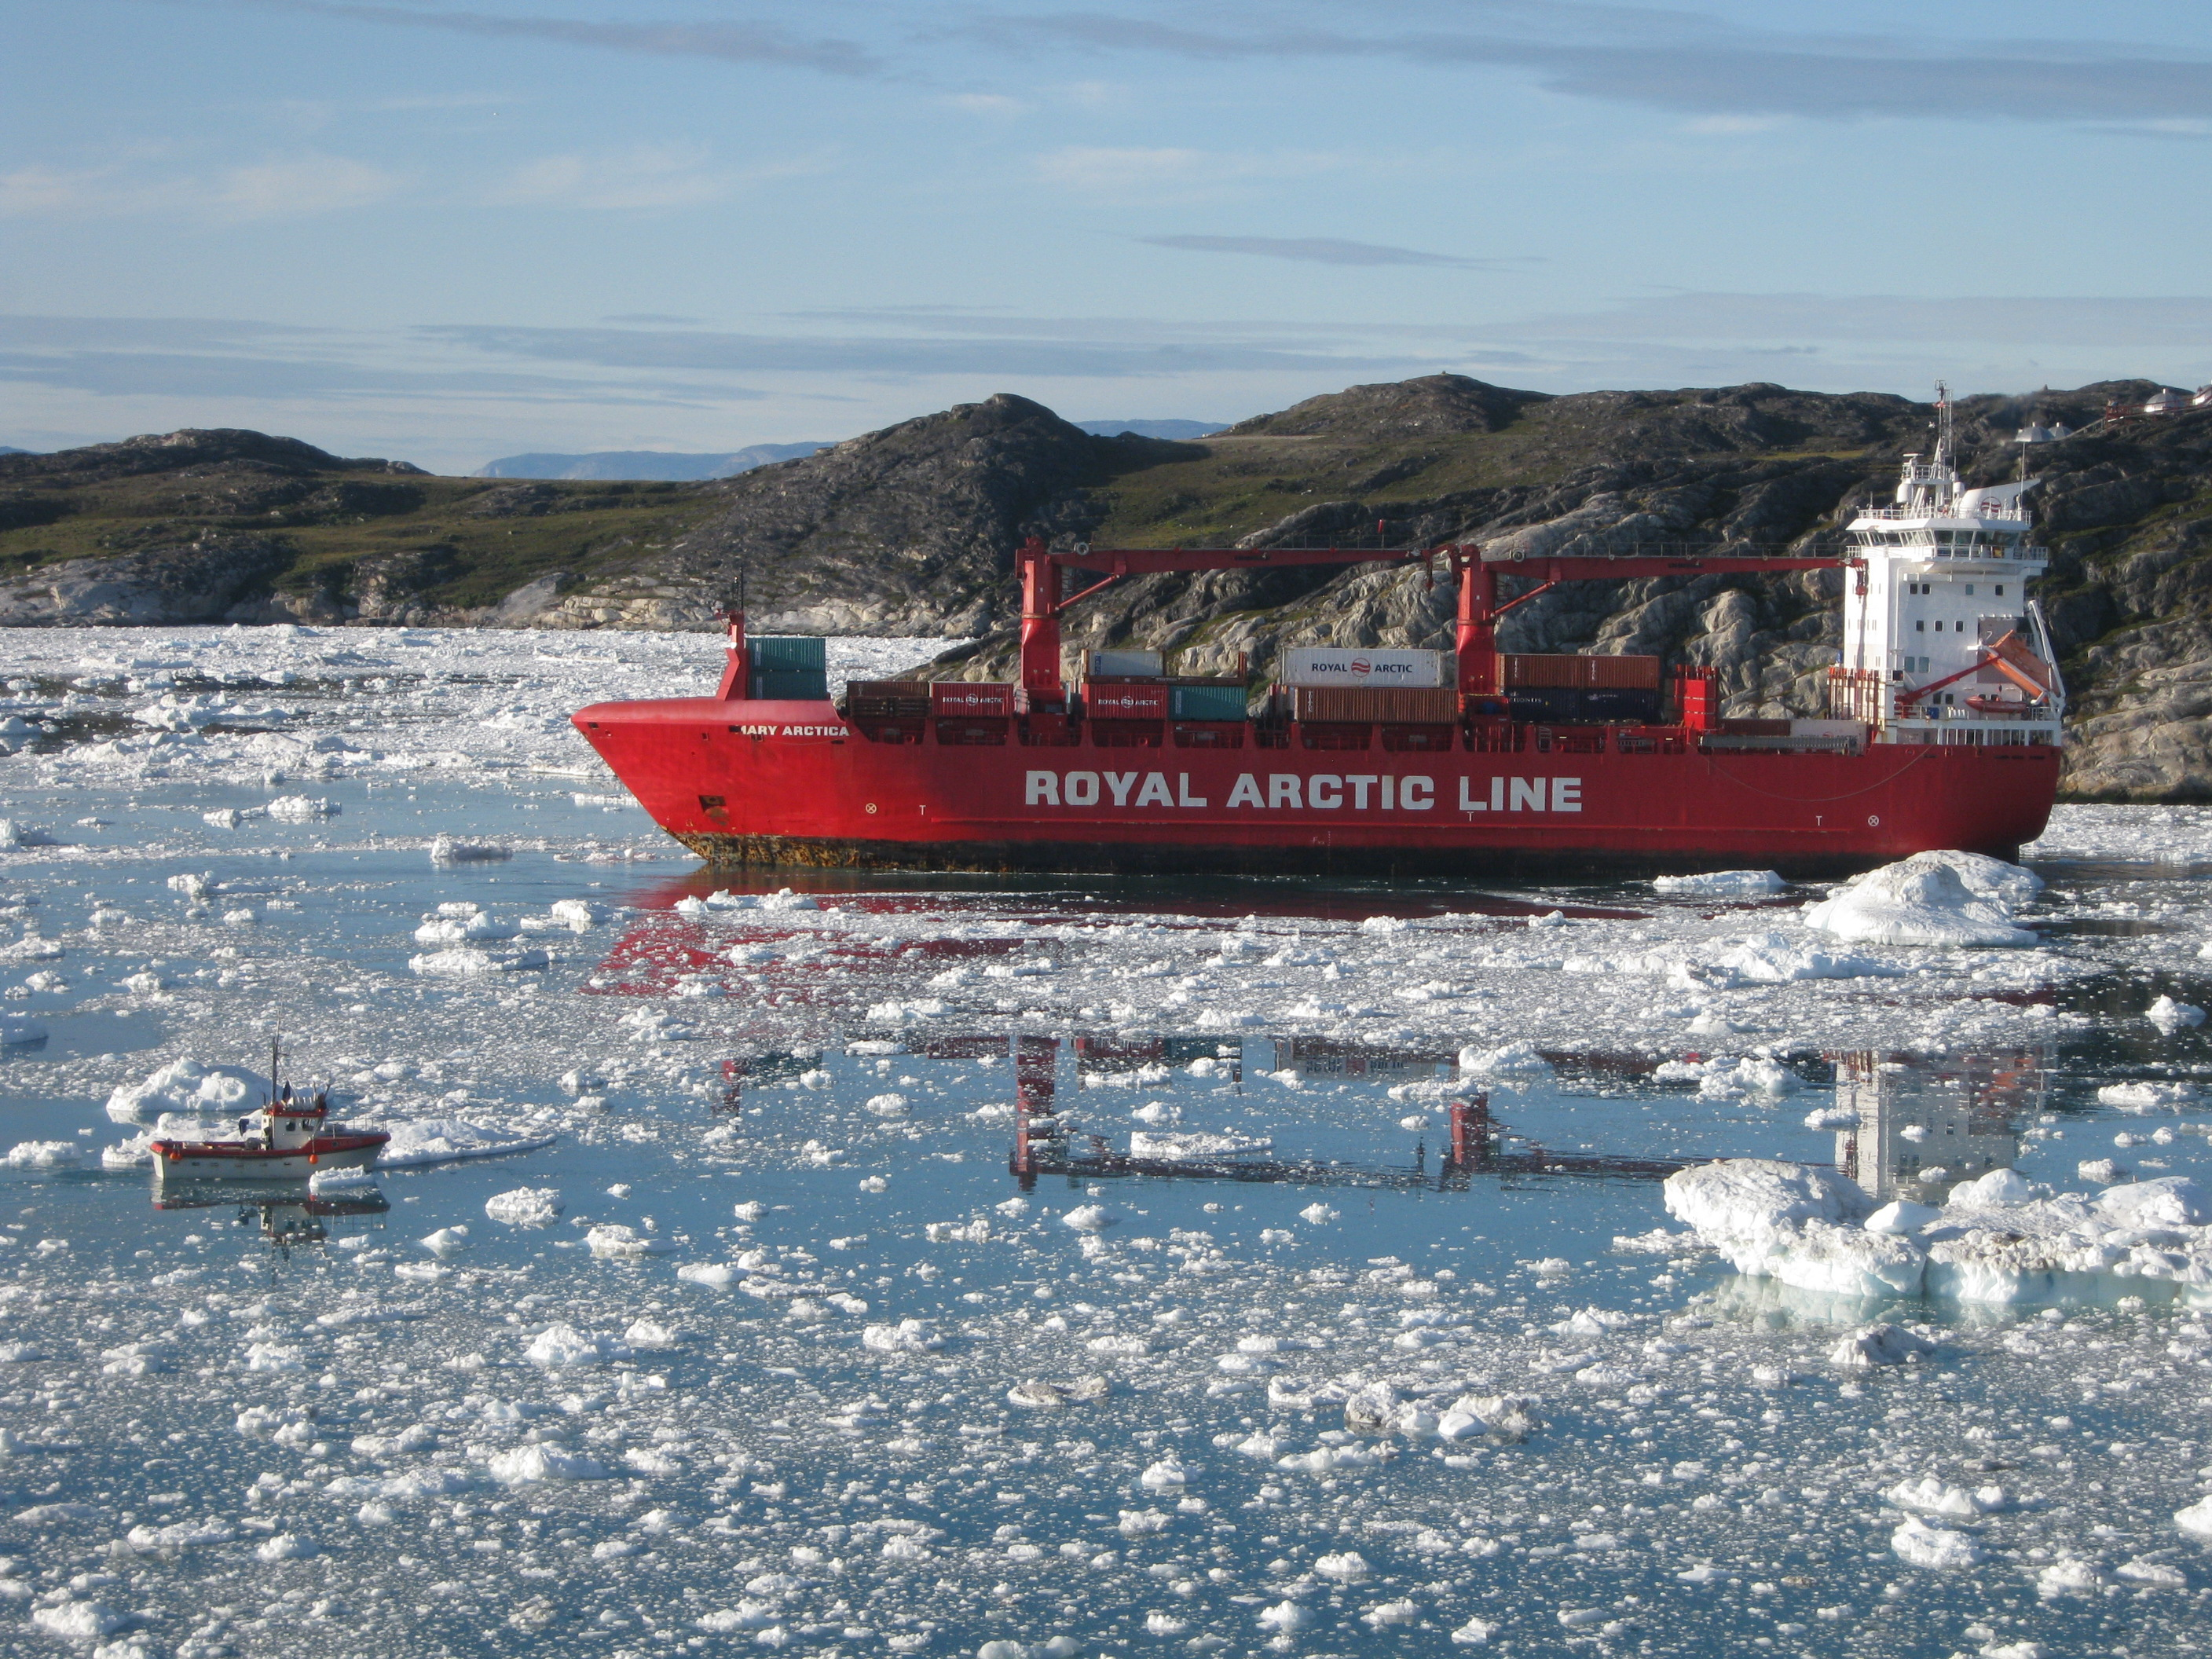 Arctic Line : Wwf study supports need to phase out use of heavy fuel oil